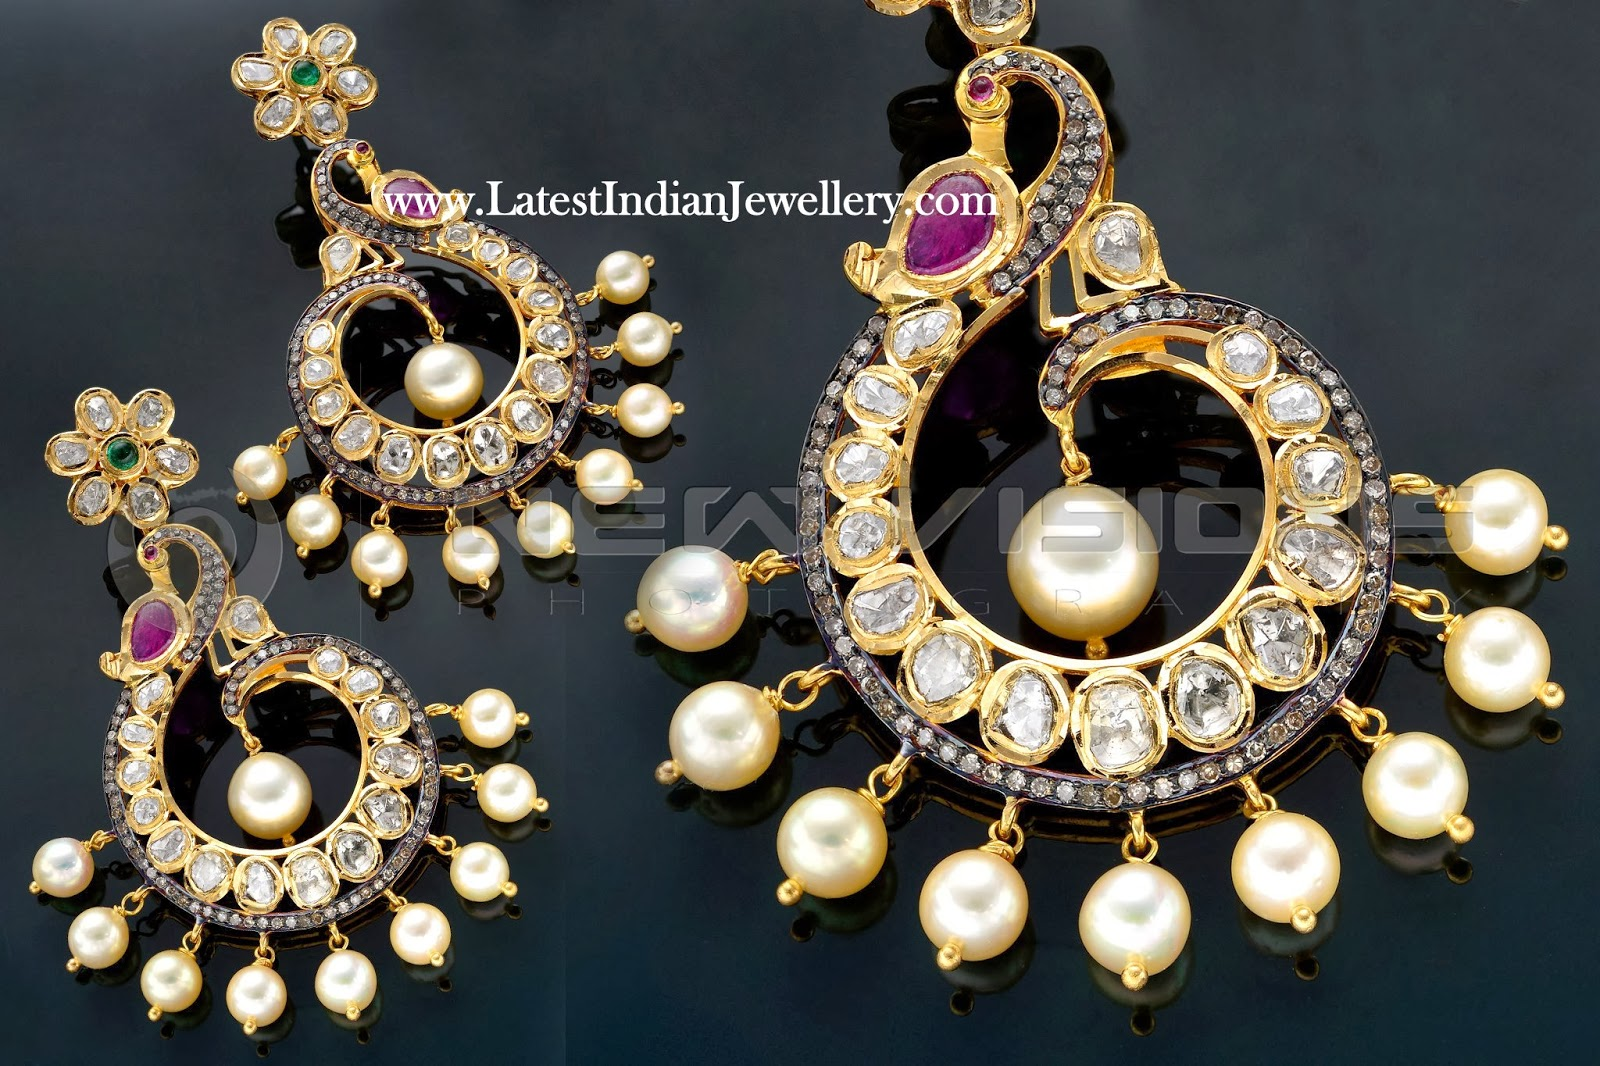 Stylish Designer Gold Pendant Set